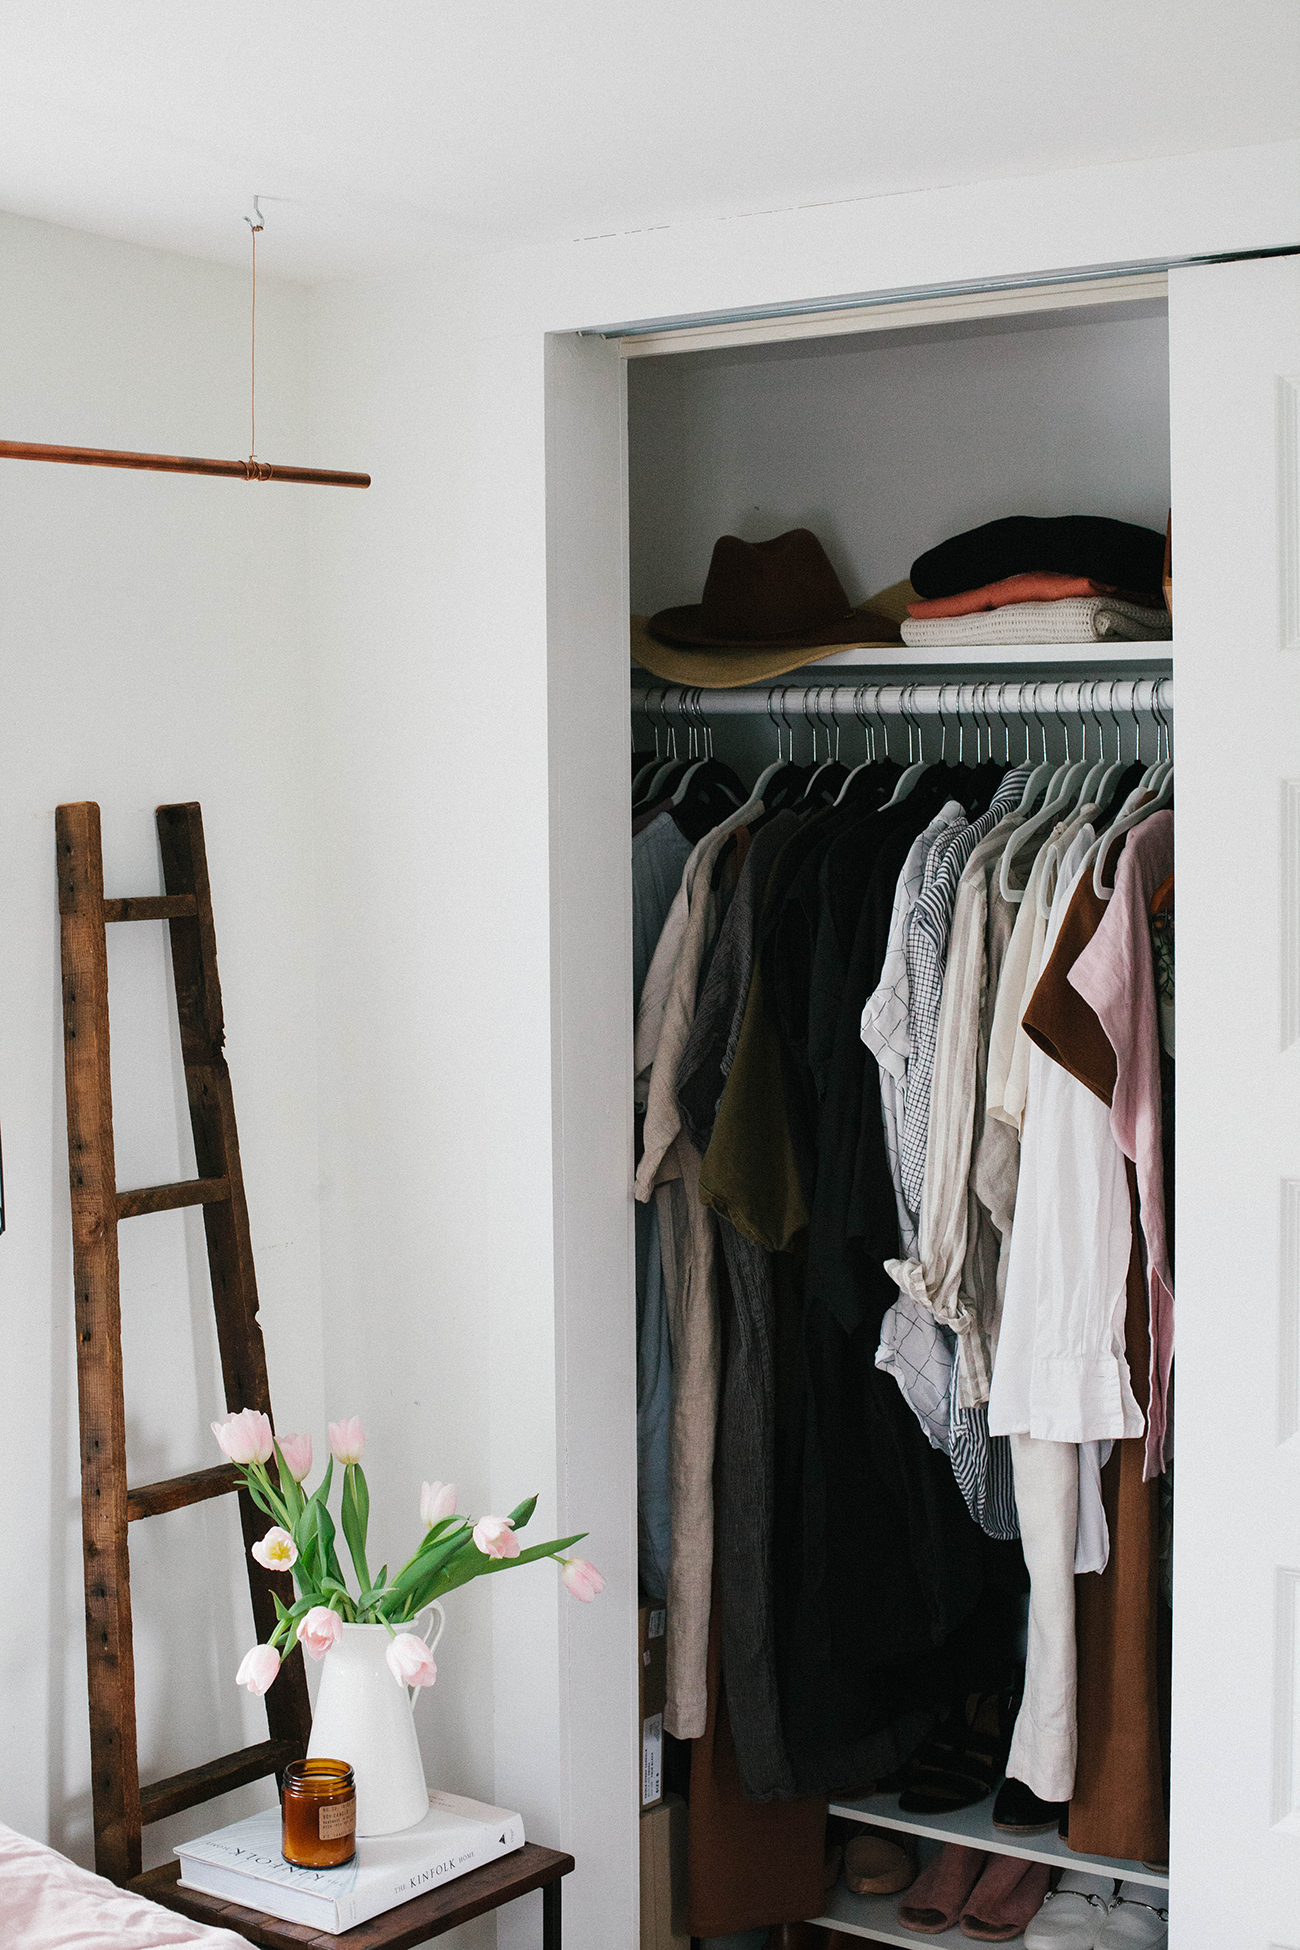 Style Wardrobe Tiny House Inspiration Closet Clutter